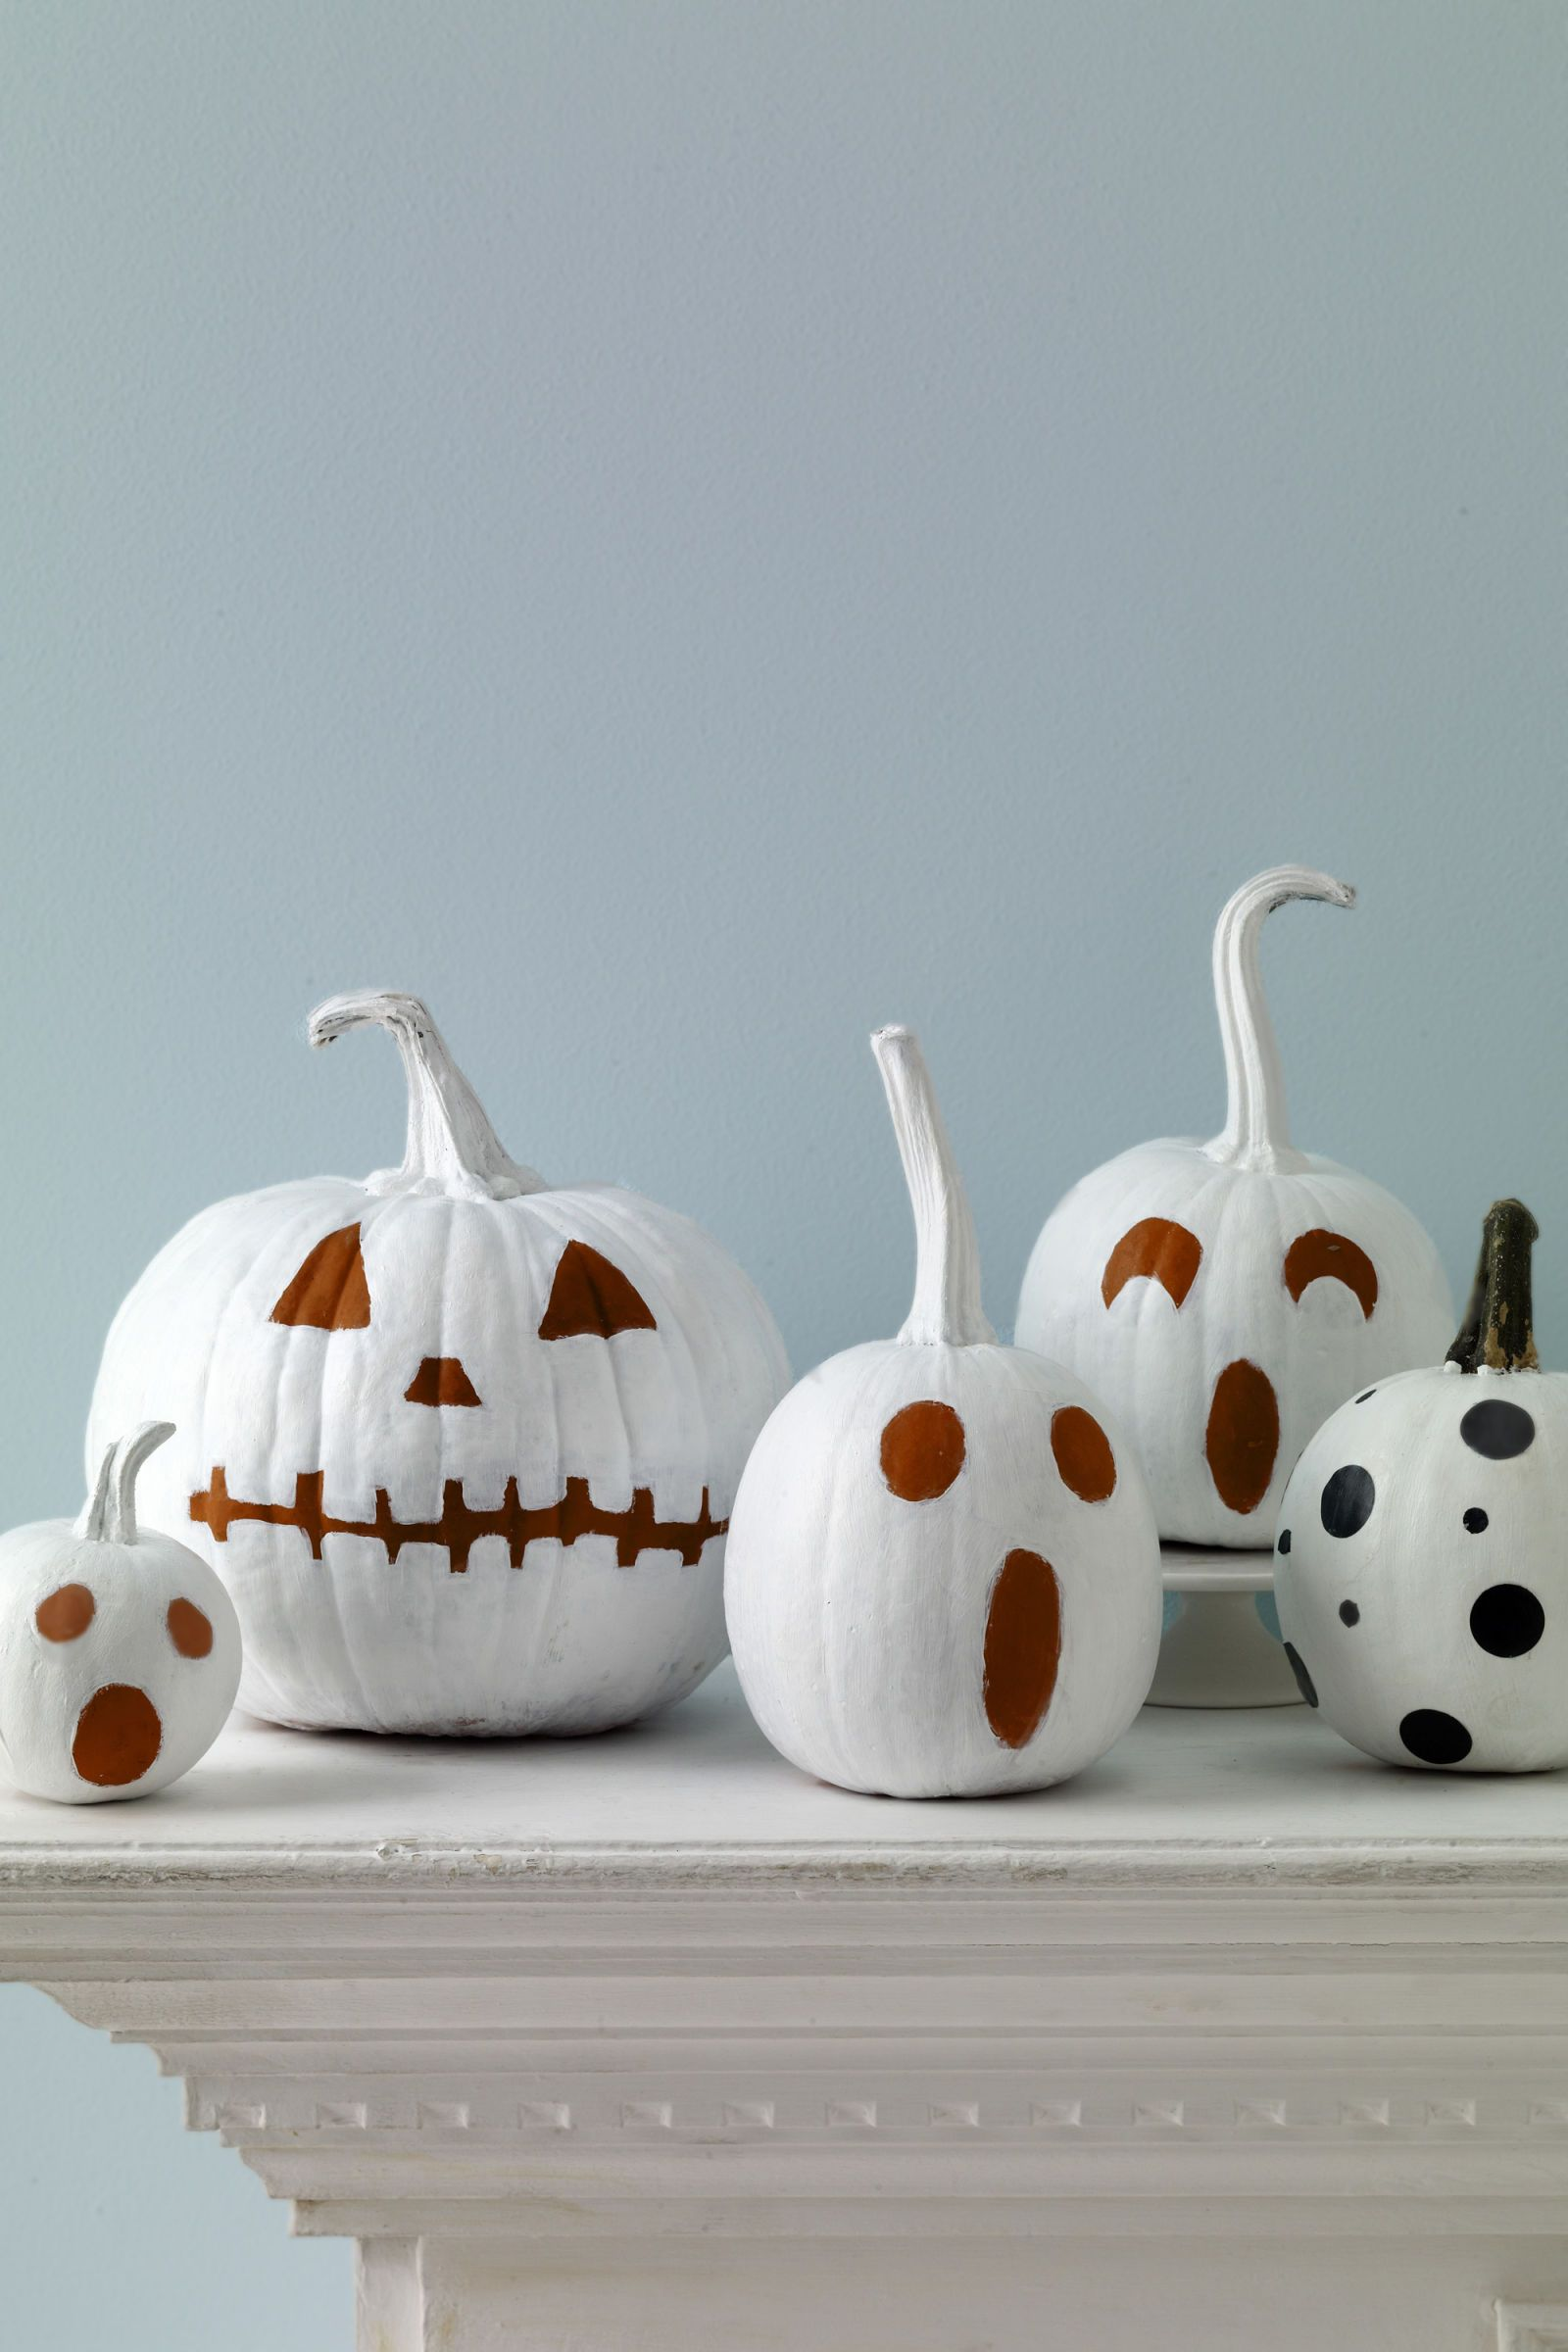 17 Spooky Halloween Decoration Ideas That Are So Chic It\u0027s